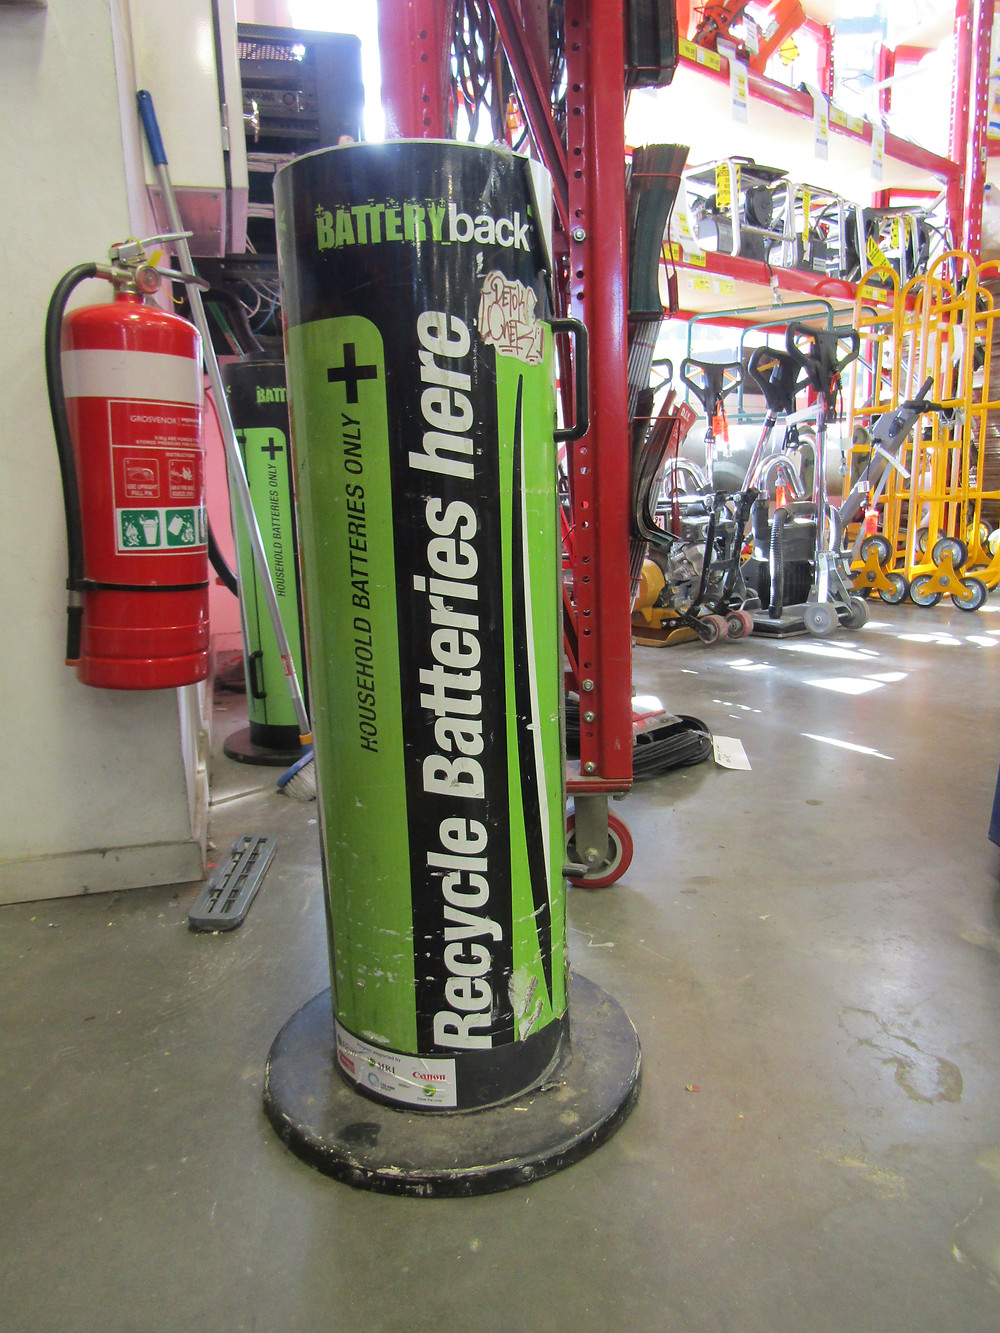 Bunnings at 230 Burwood Road, Hawthorn in-store battery collection bin.